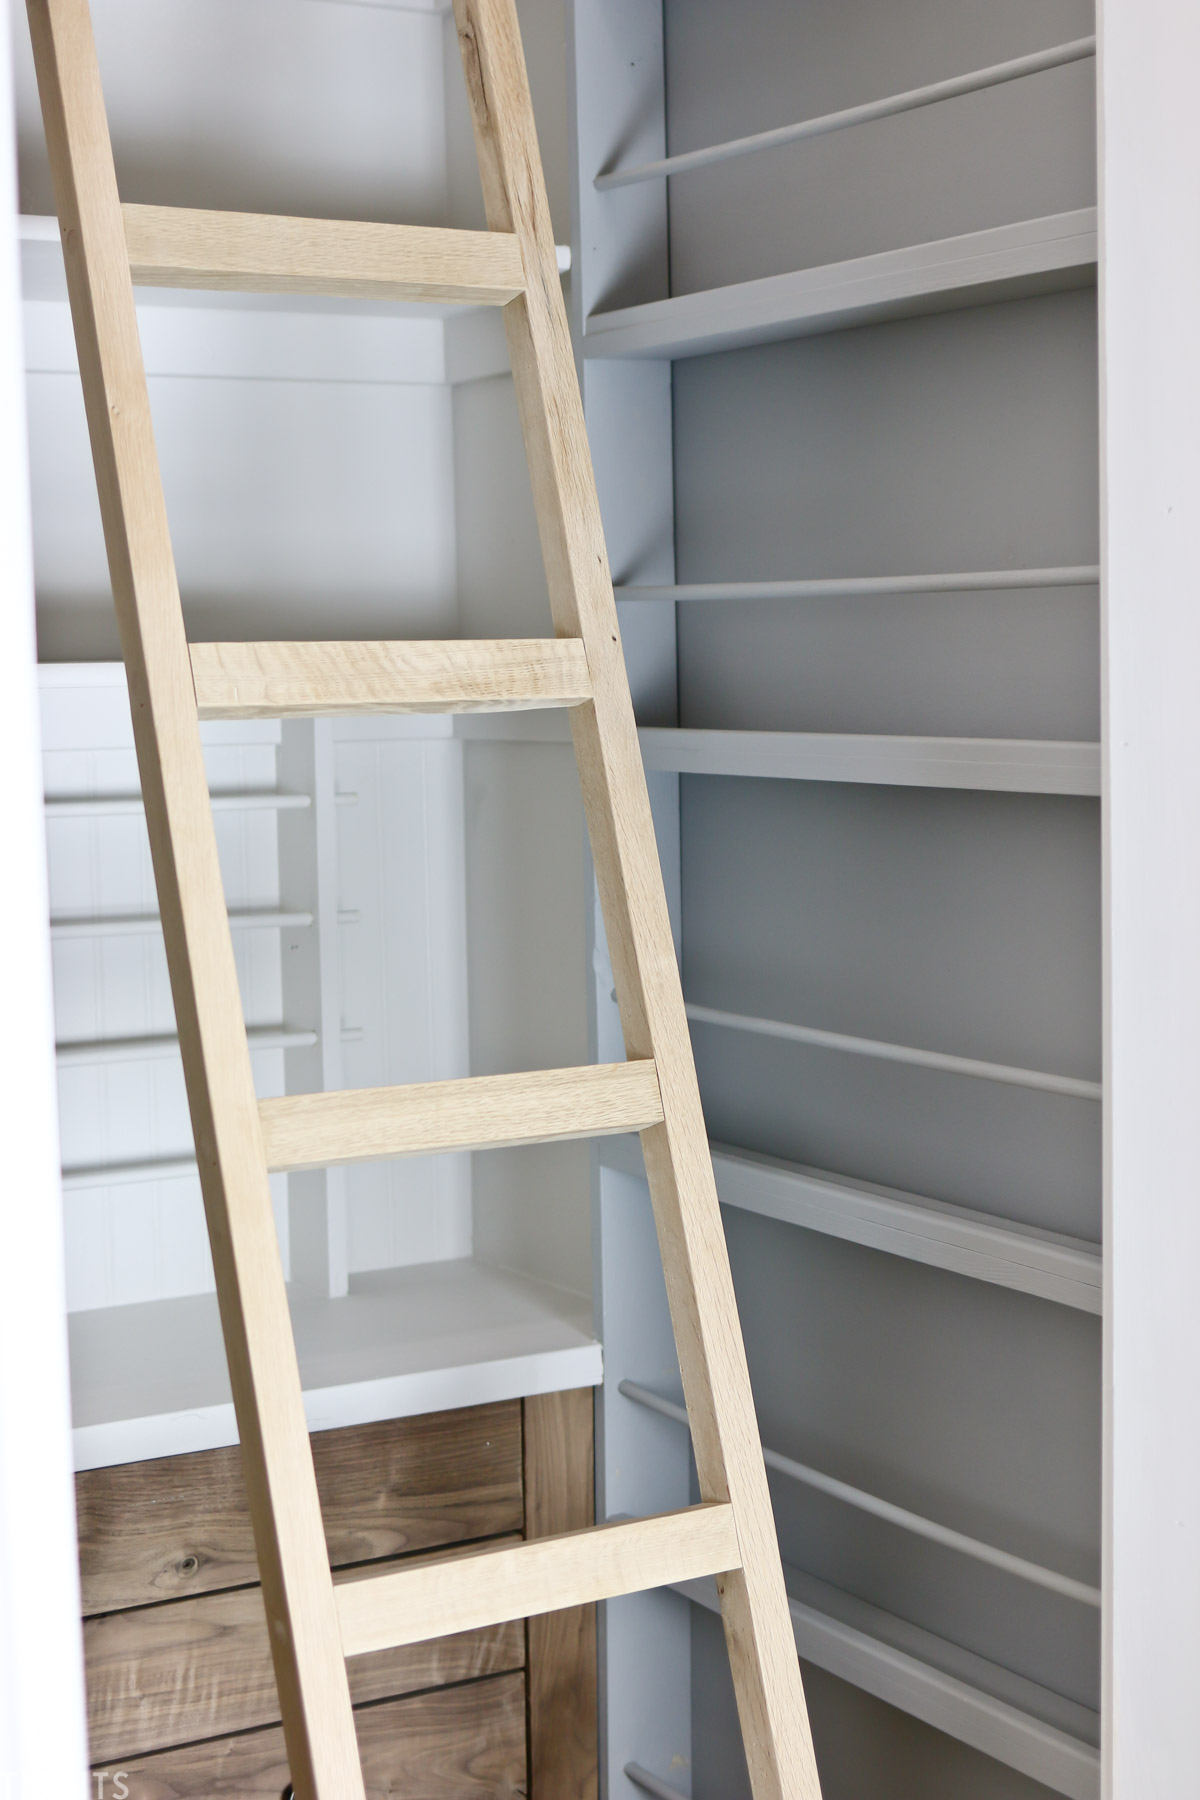 Building a Multi-Purpose Storage Closet